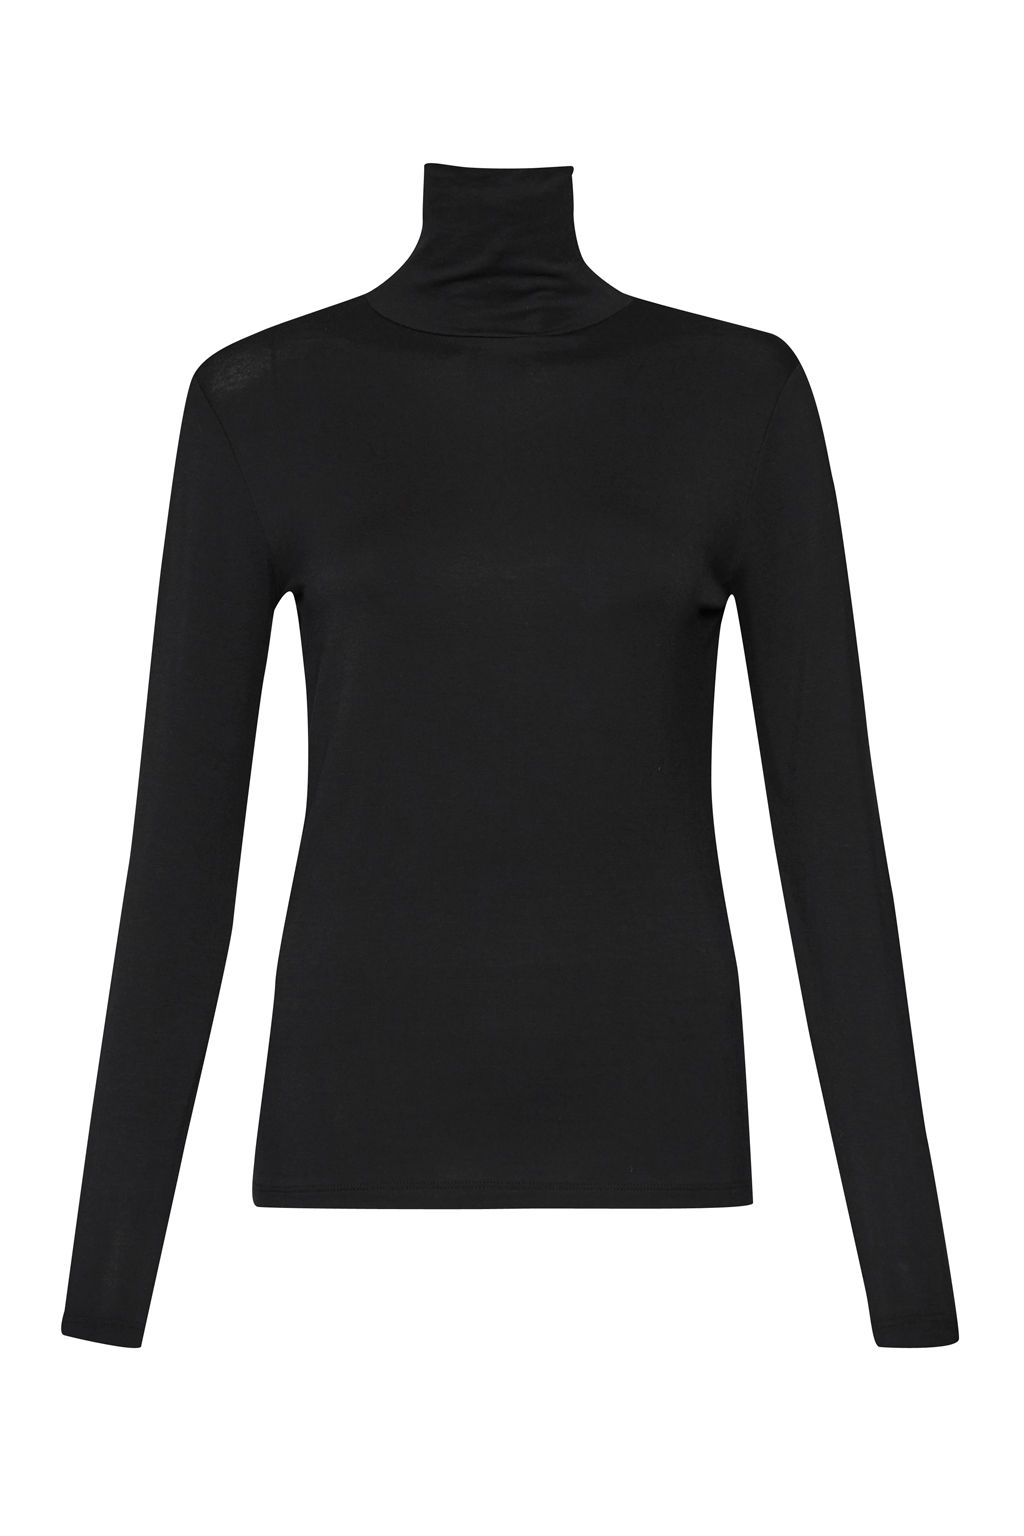 Great Plains Sudbury Stretch Poloneck Top, Black